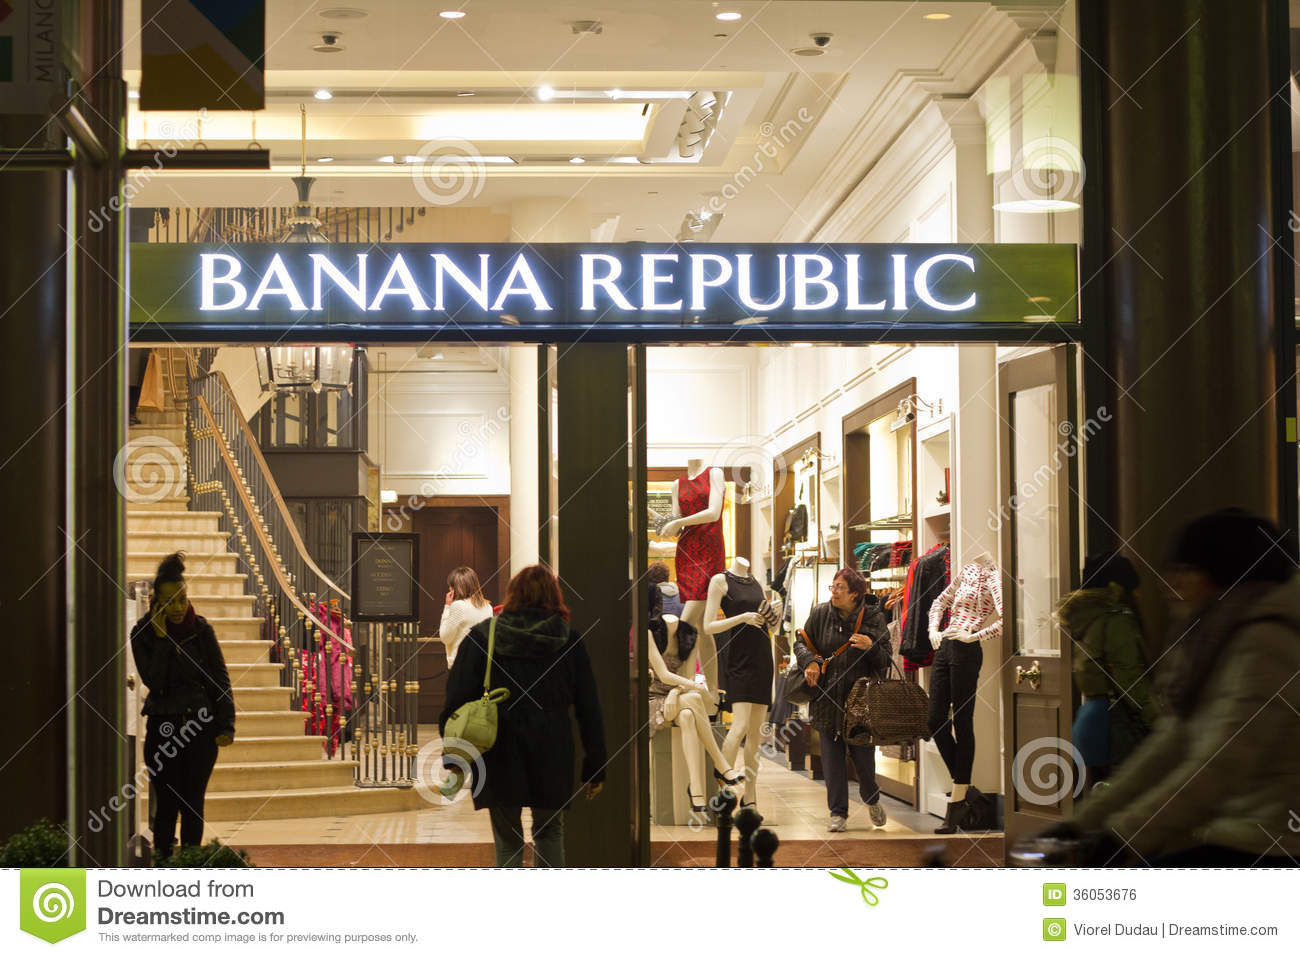 Banana Republic Credit Card customer service phone number for support and help. Hints to reach a live person in Banana Republic Credit Card's customer service department. Plus, Banana Republic Credit Card reviews and review.